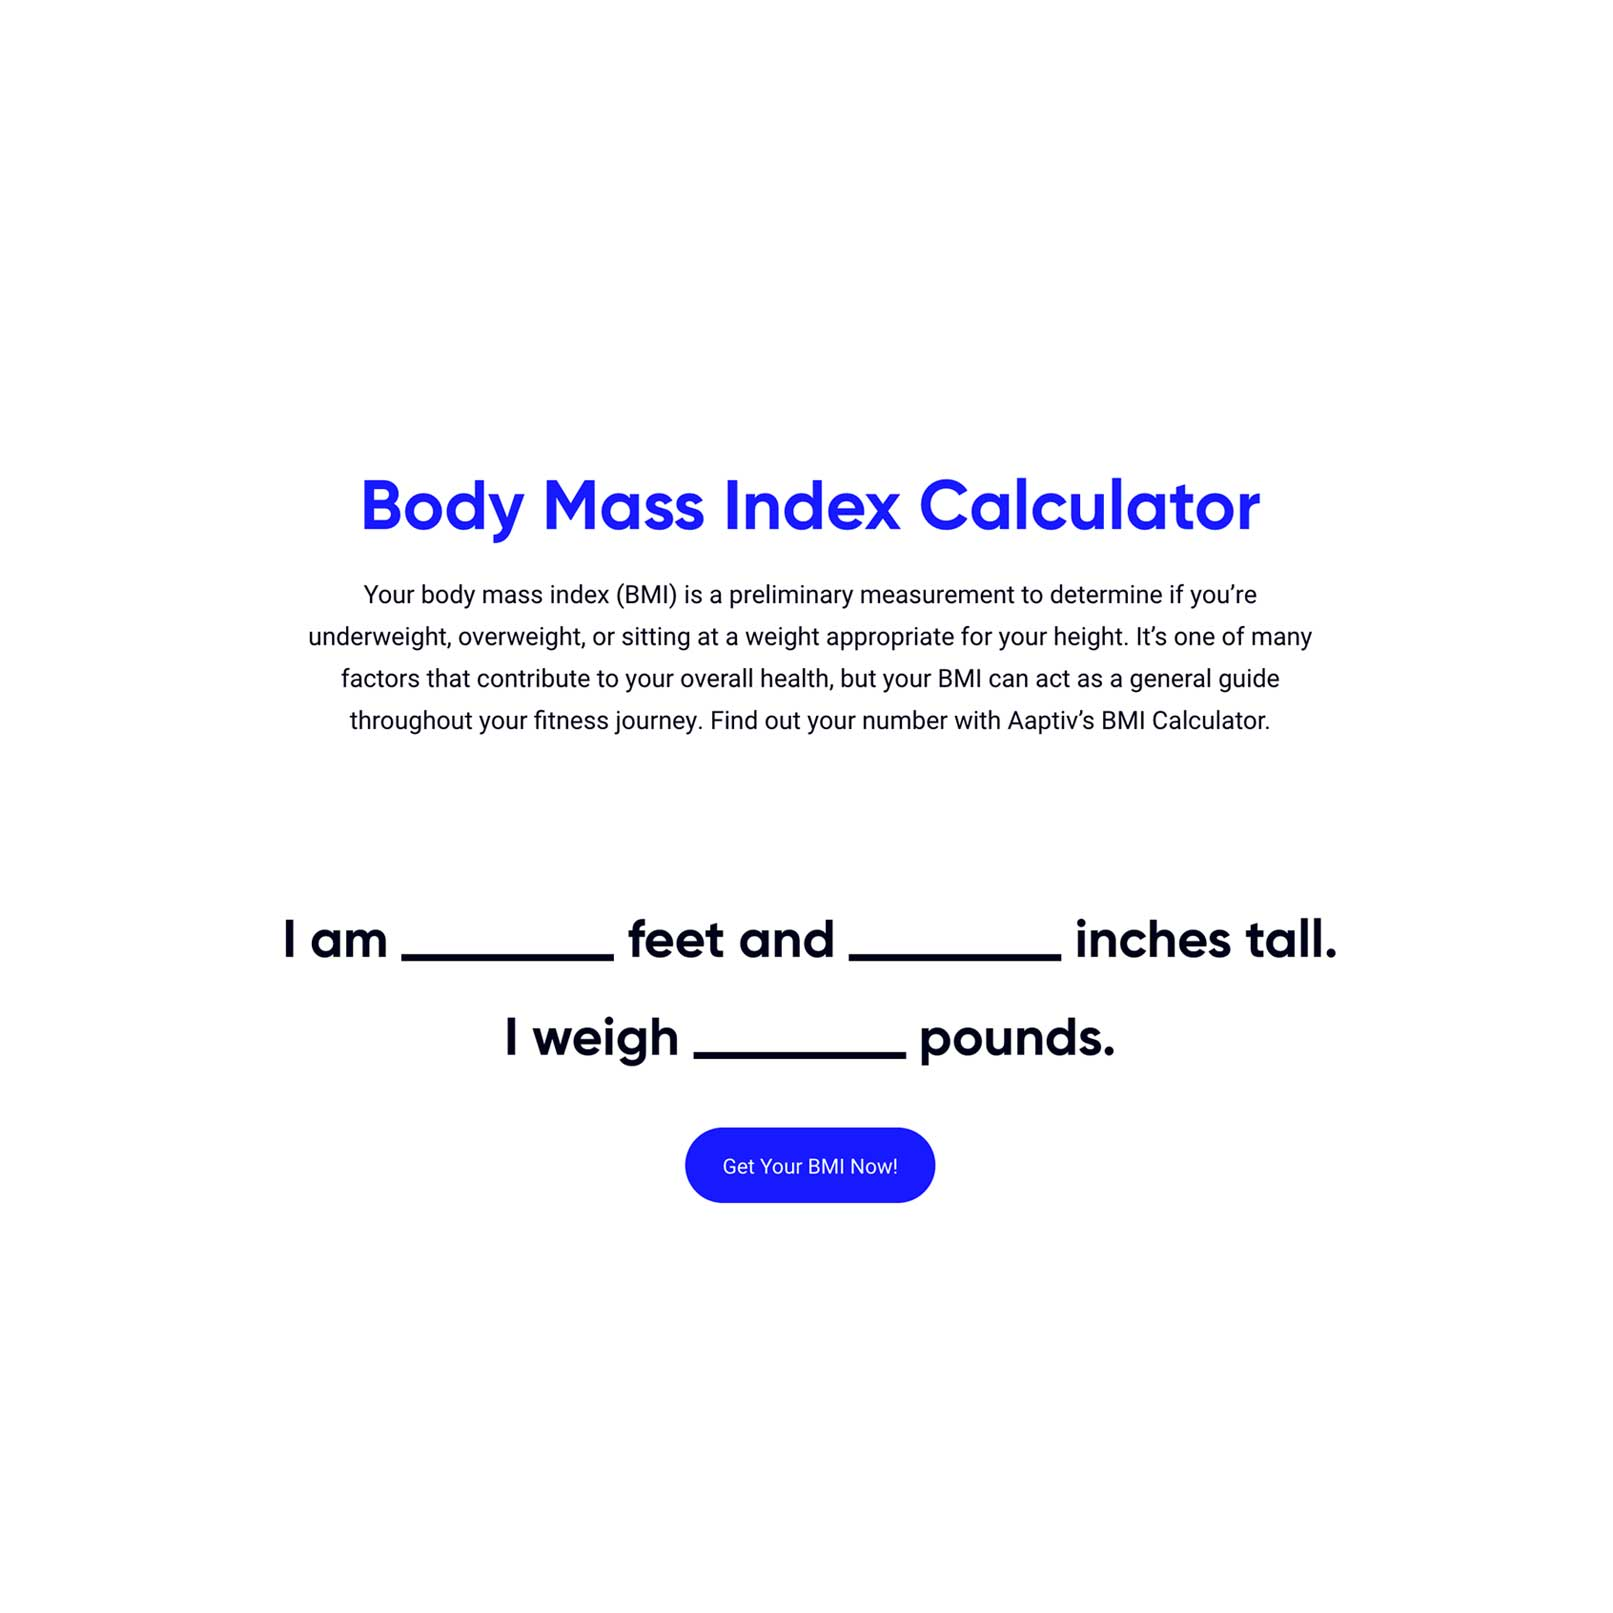 Body Mass Index Calculator